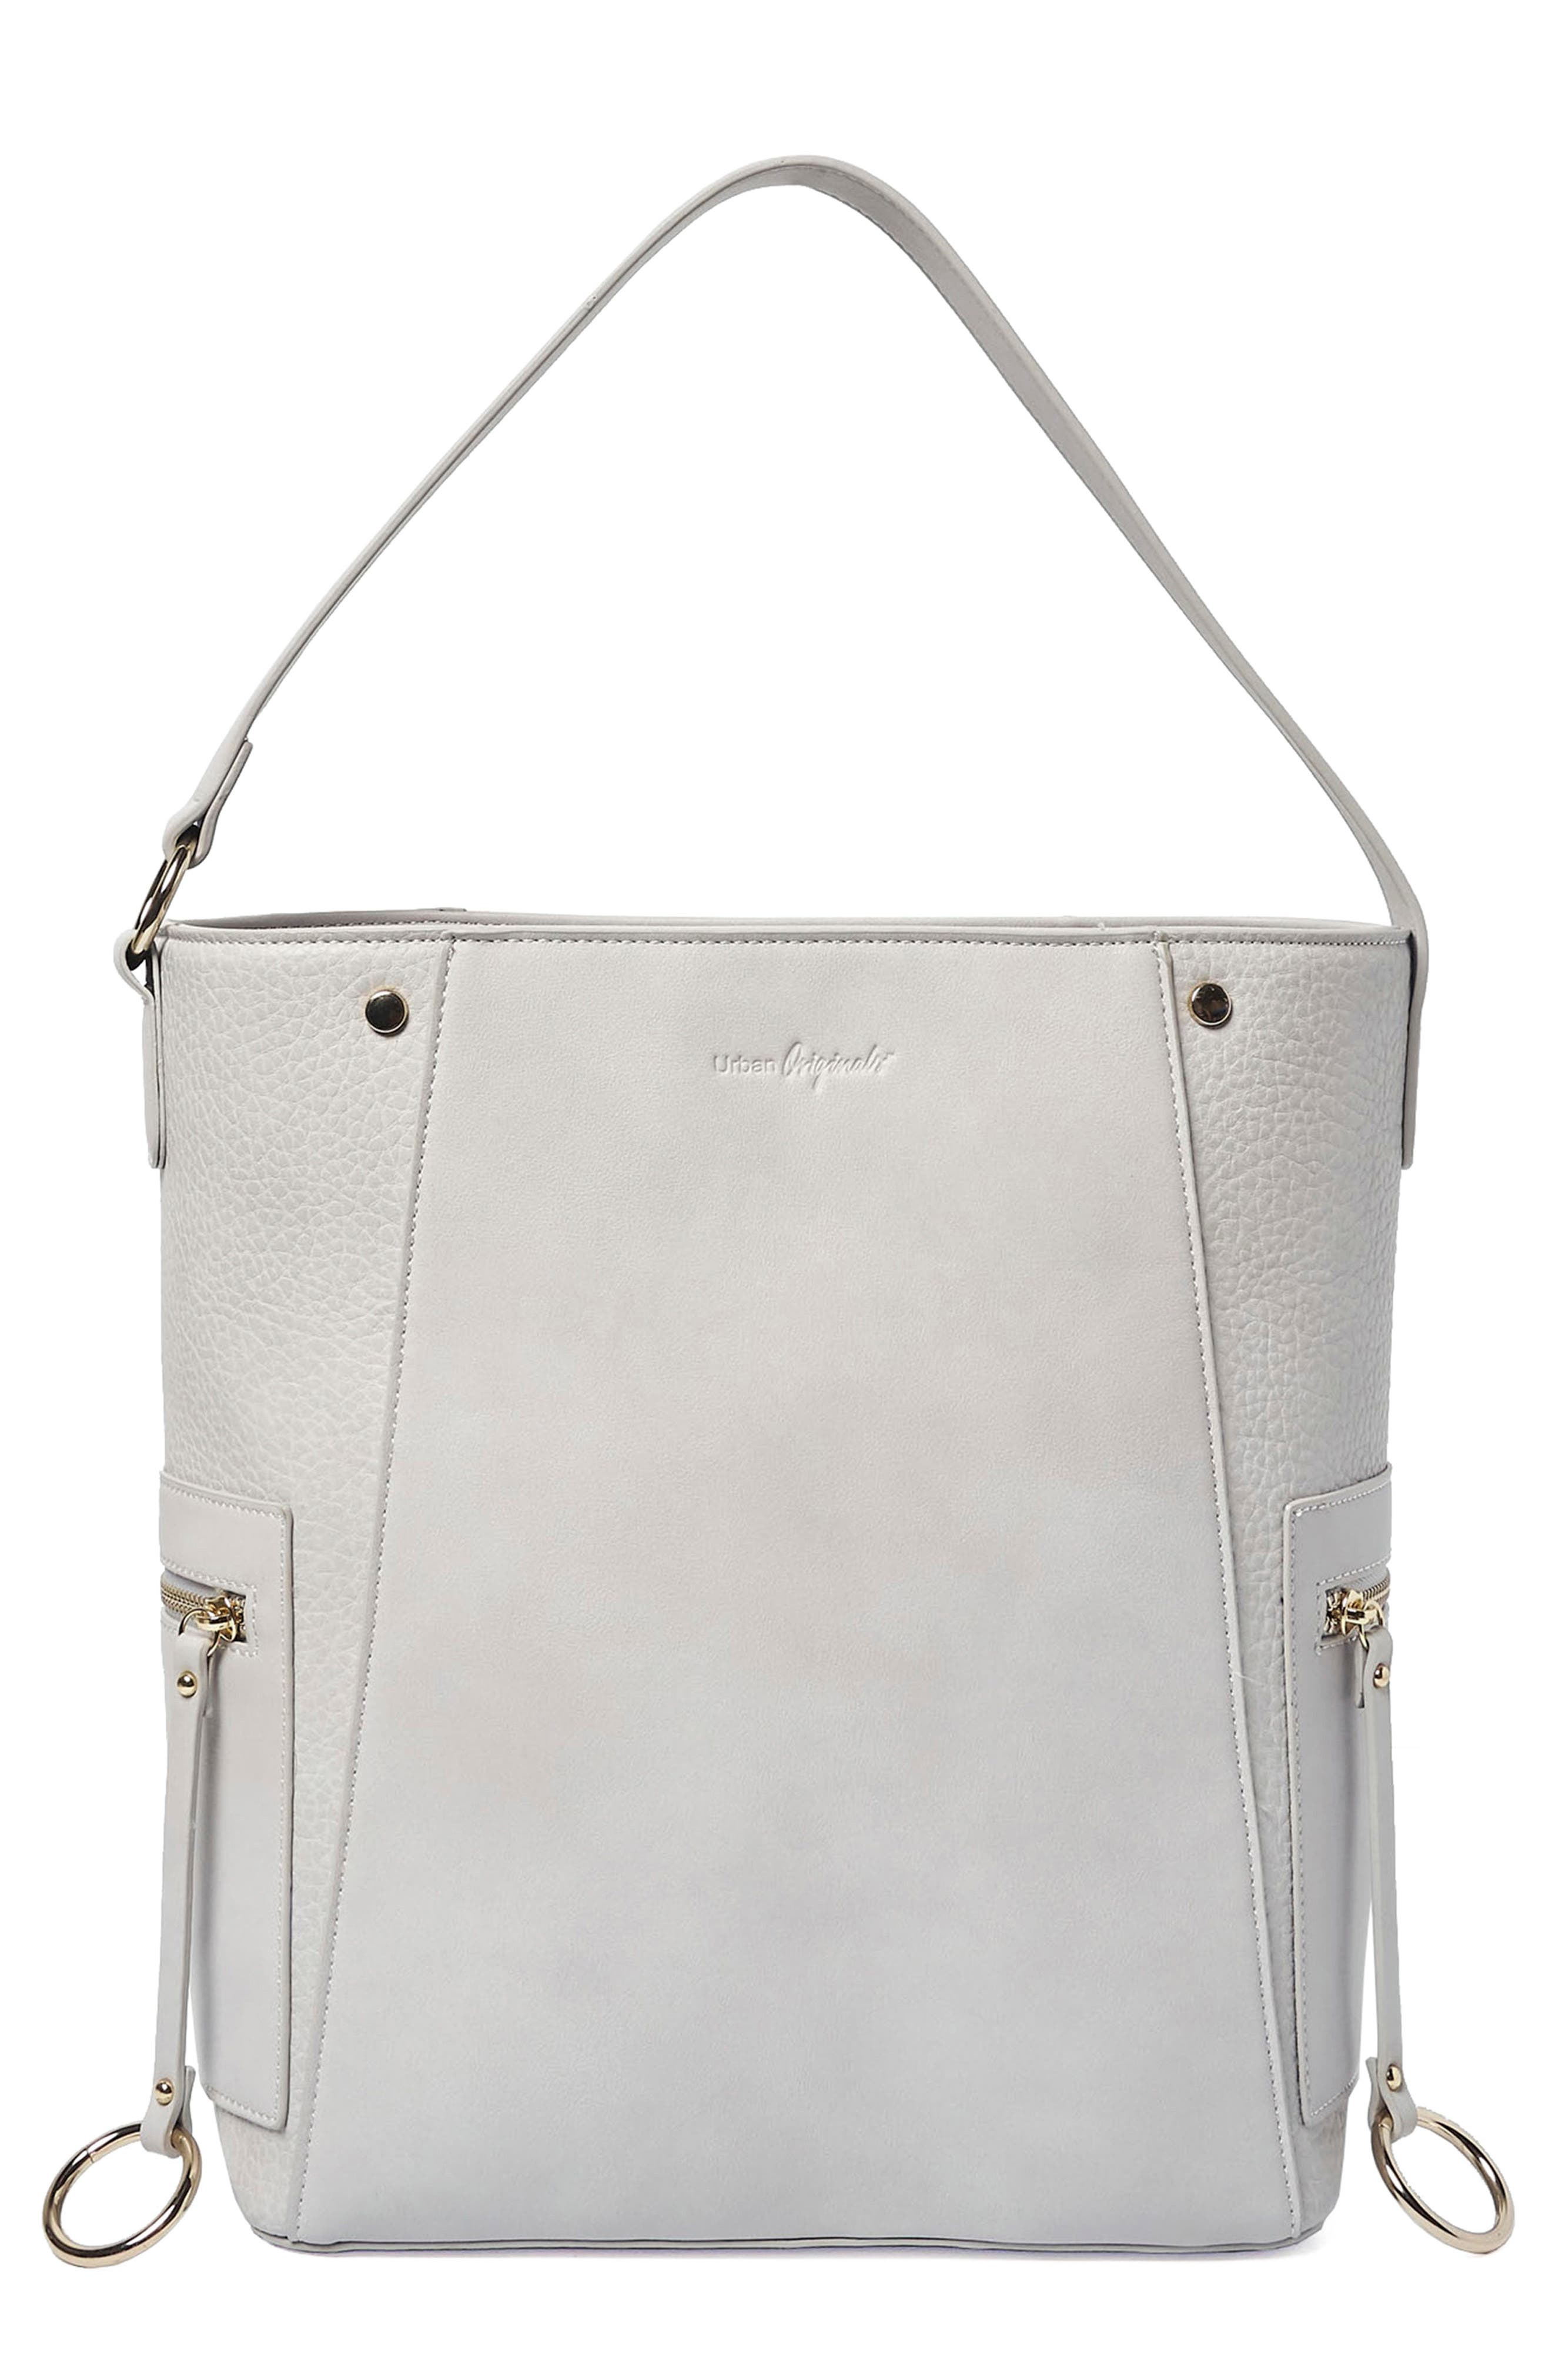 Urban Originals RETRO ROMANCE VEGAN LEATHER TOTE - GREY